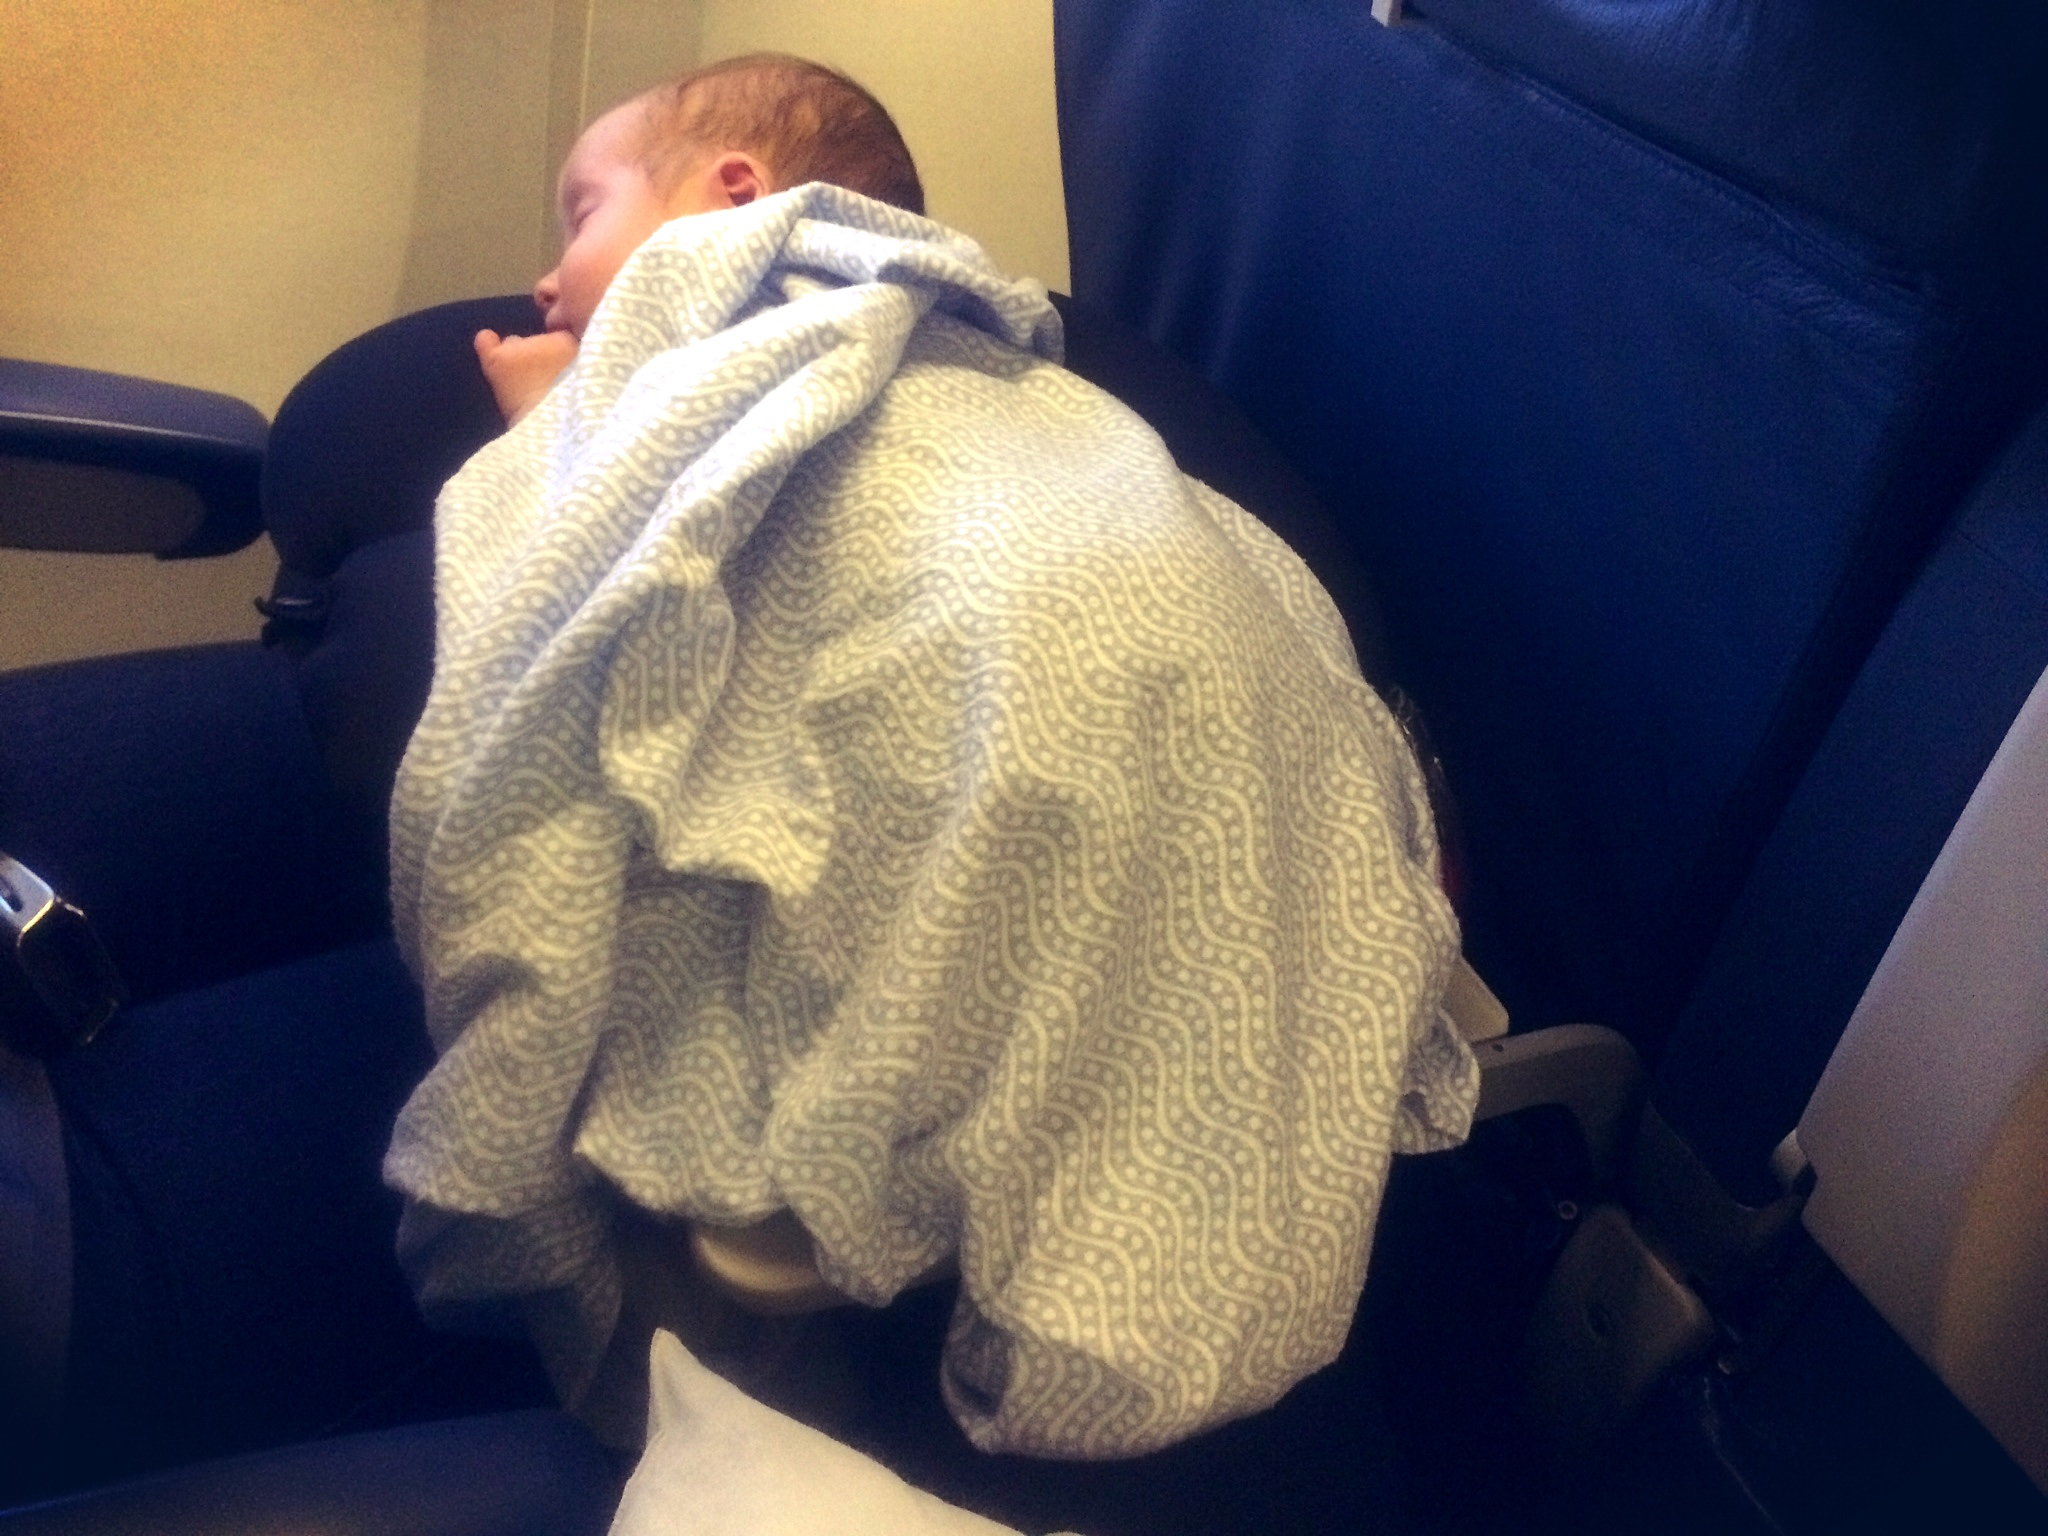 Seat-back tray tables make comfy beds